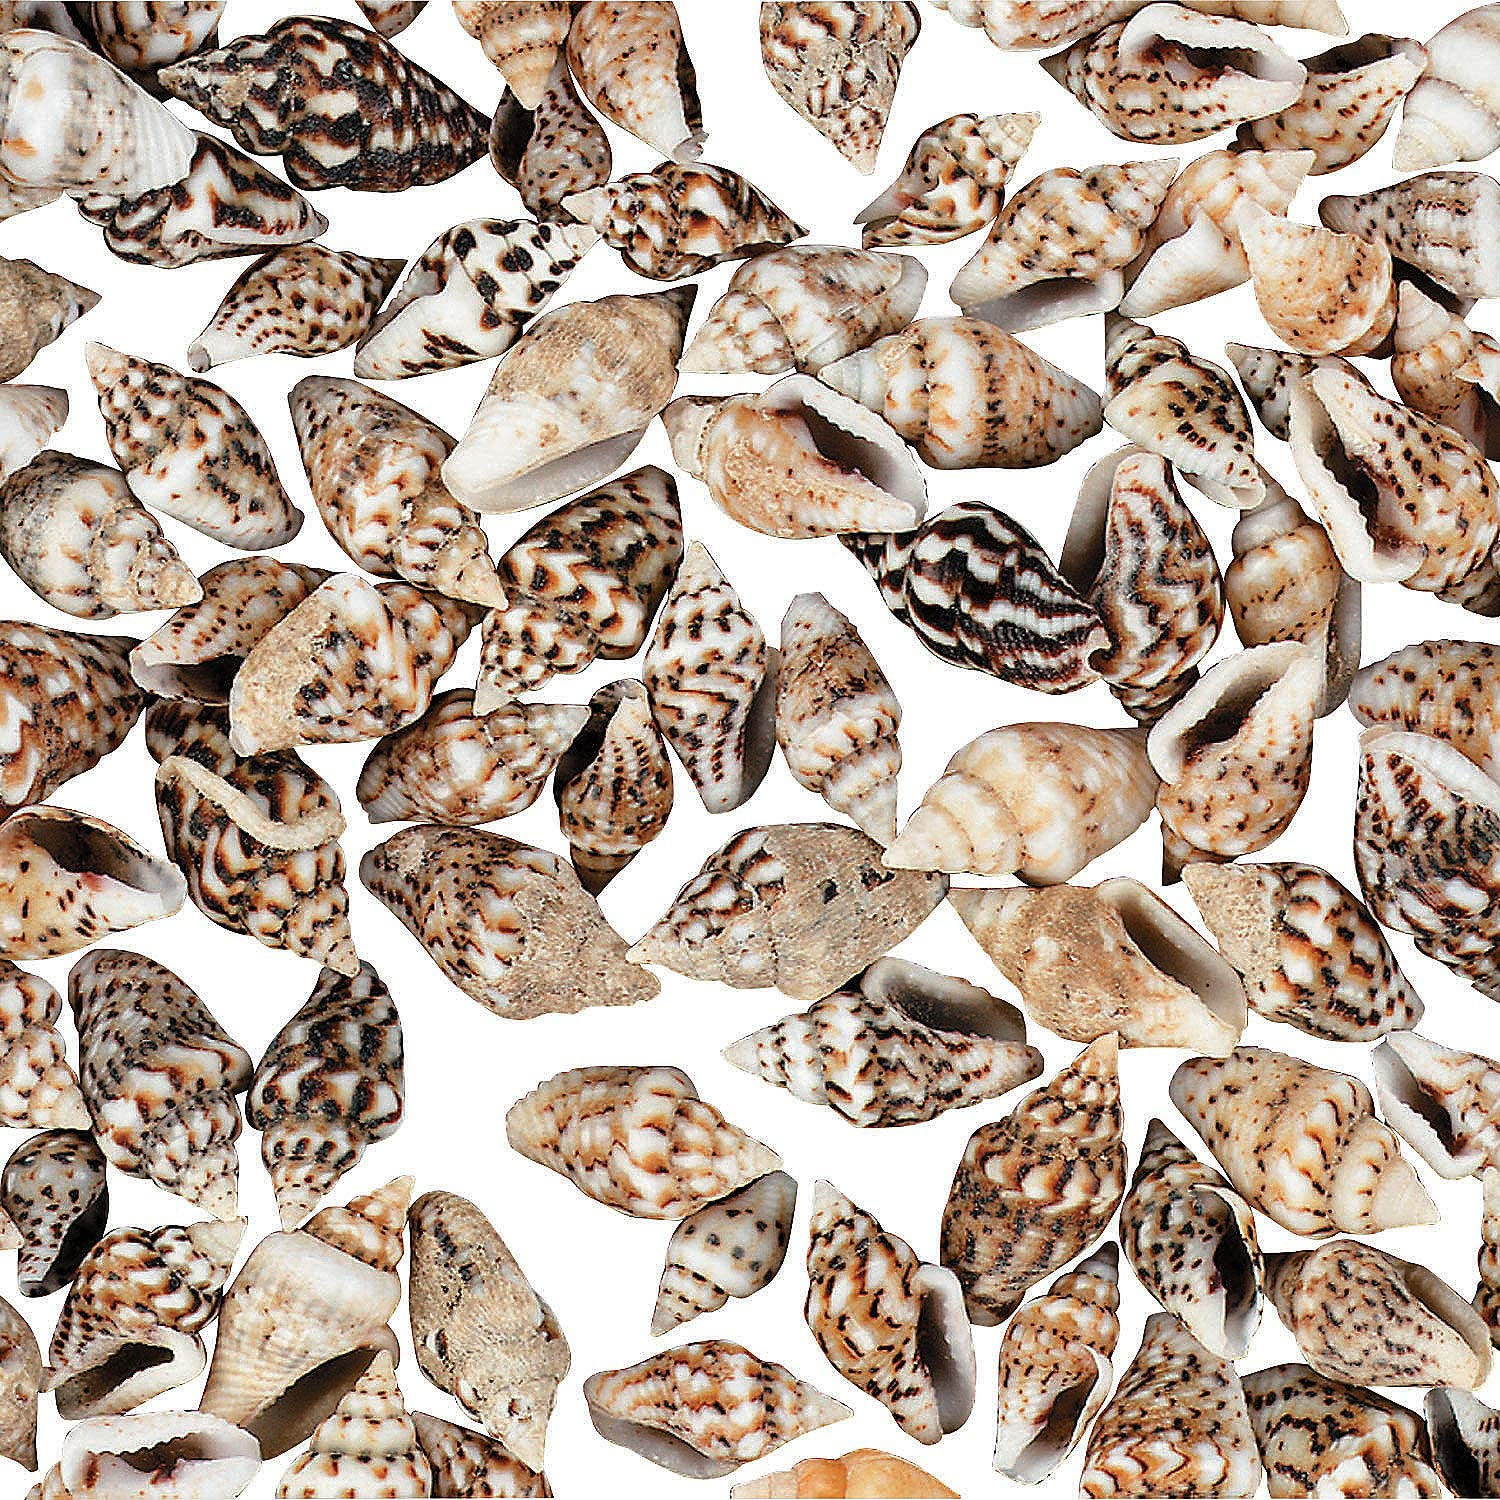 Mini Natural Craft Shells (1Lb) - Crafts for Kids and Fun Home Activities